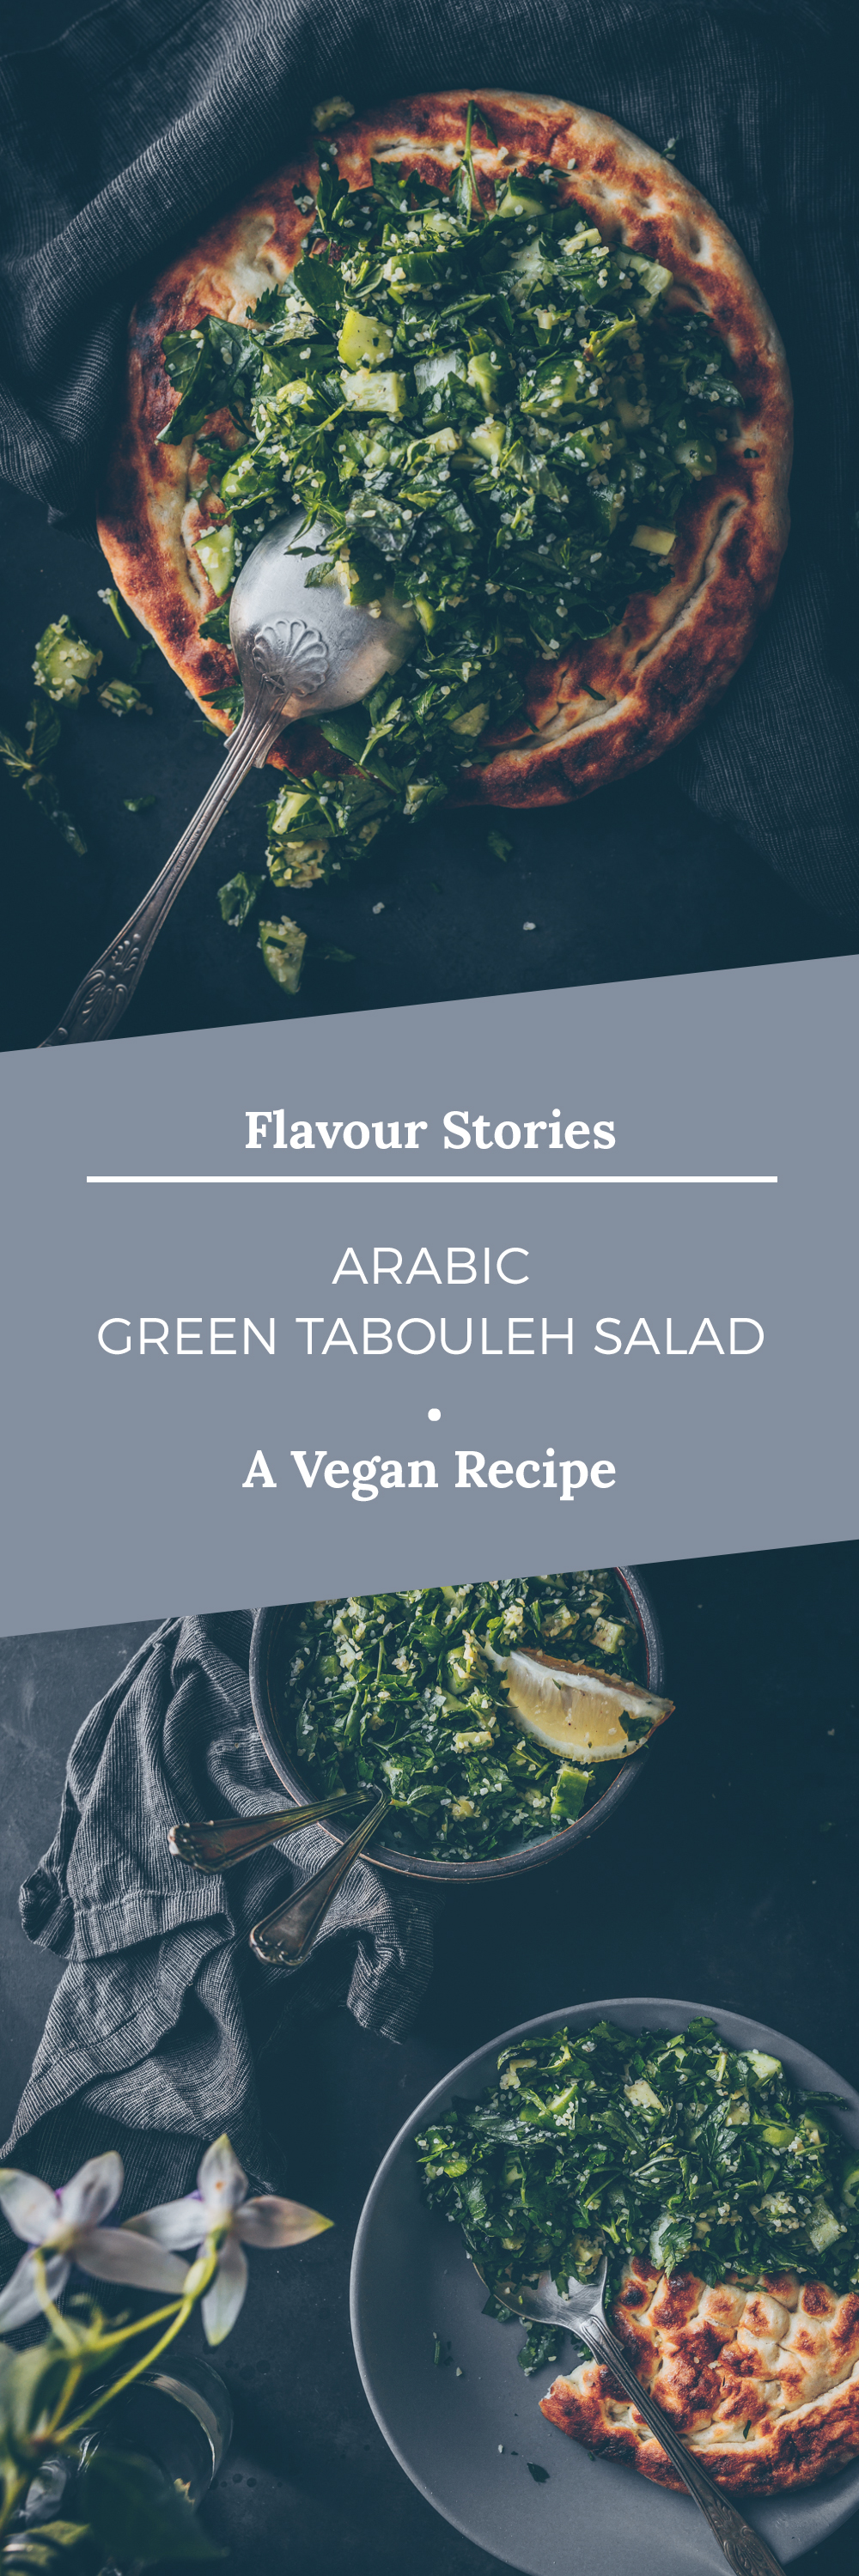 Arabic Green Tabouleh (Tabbouleh) Salad by Kati of black.white.vivid. (Vegan Recipe)